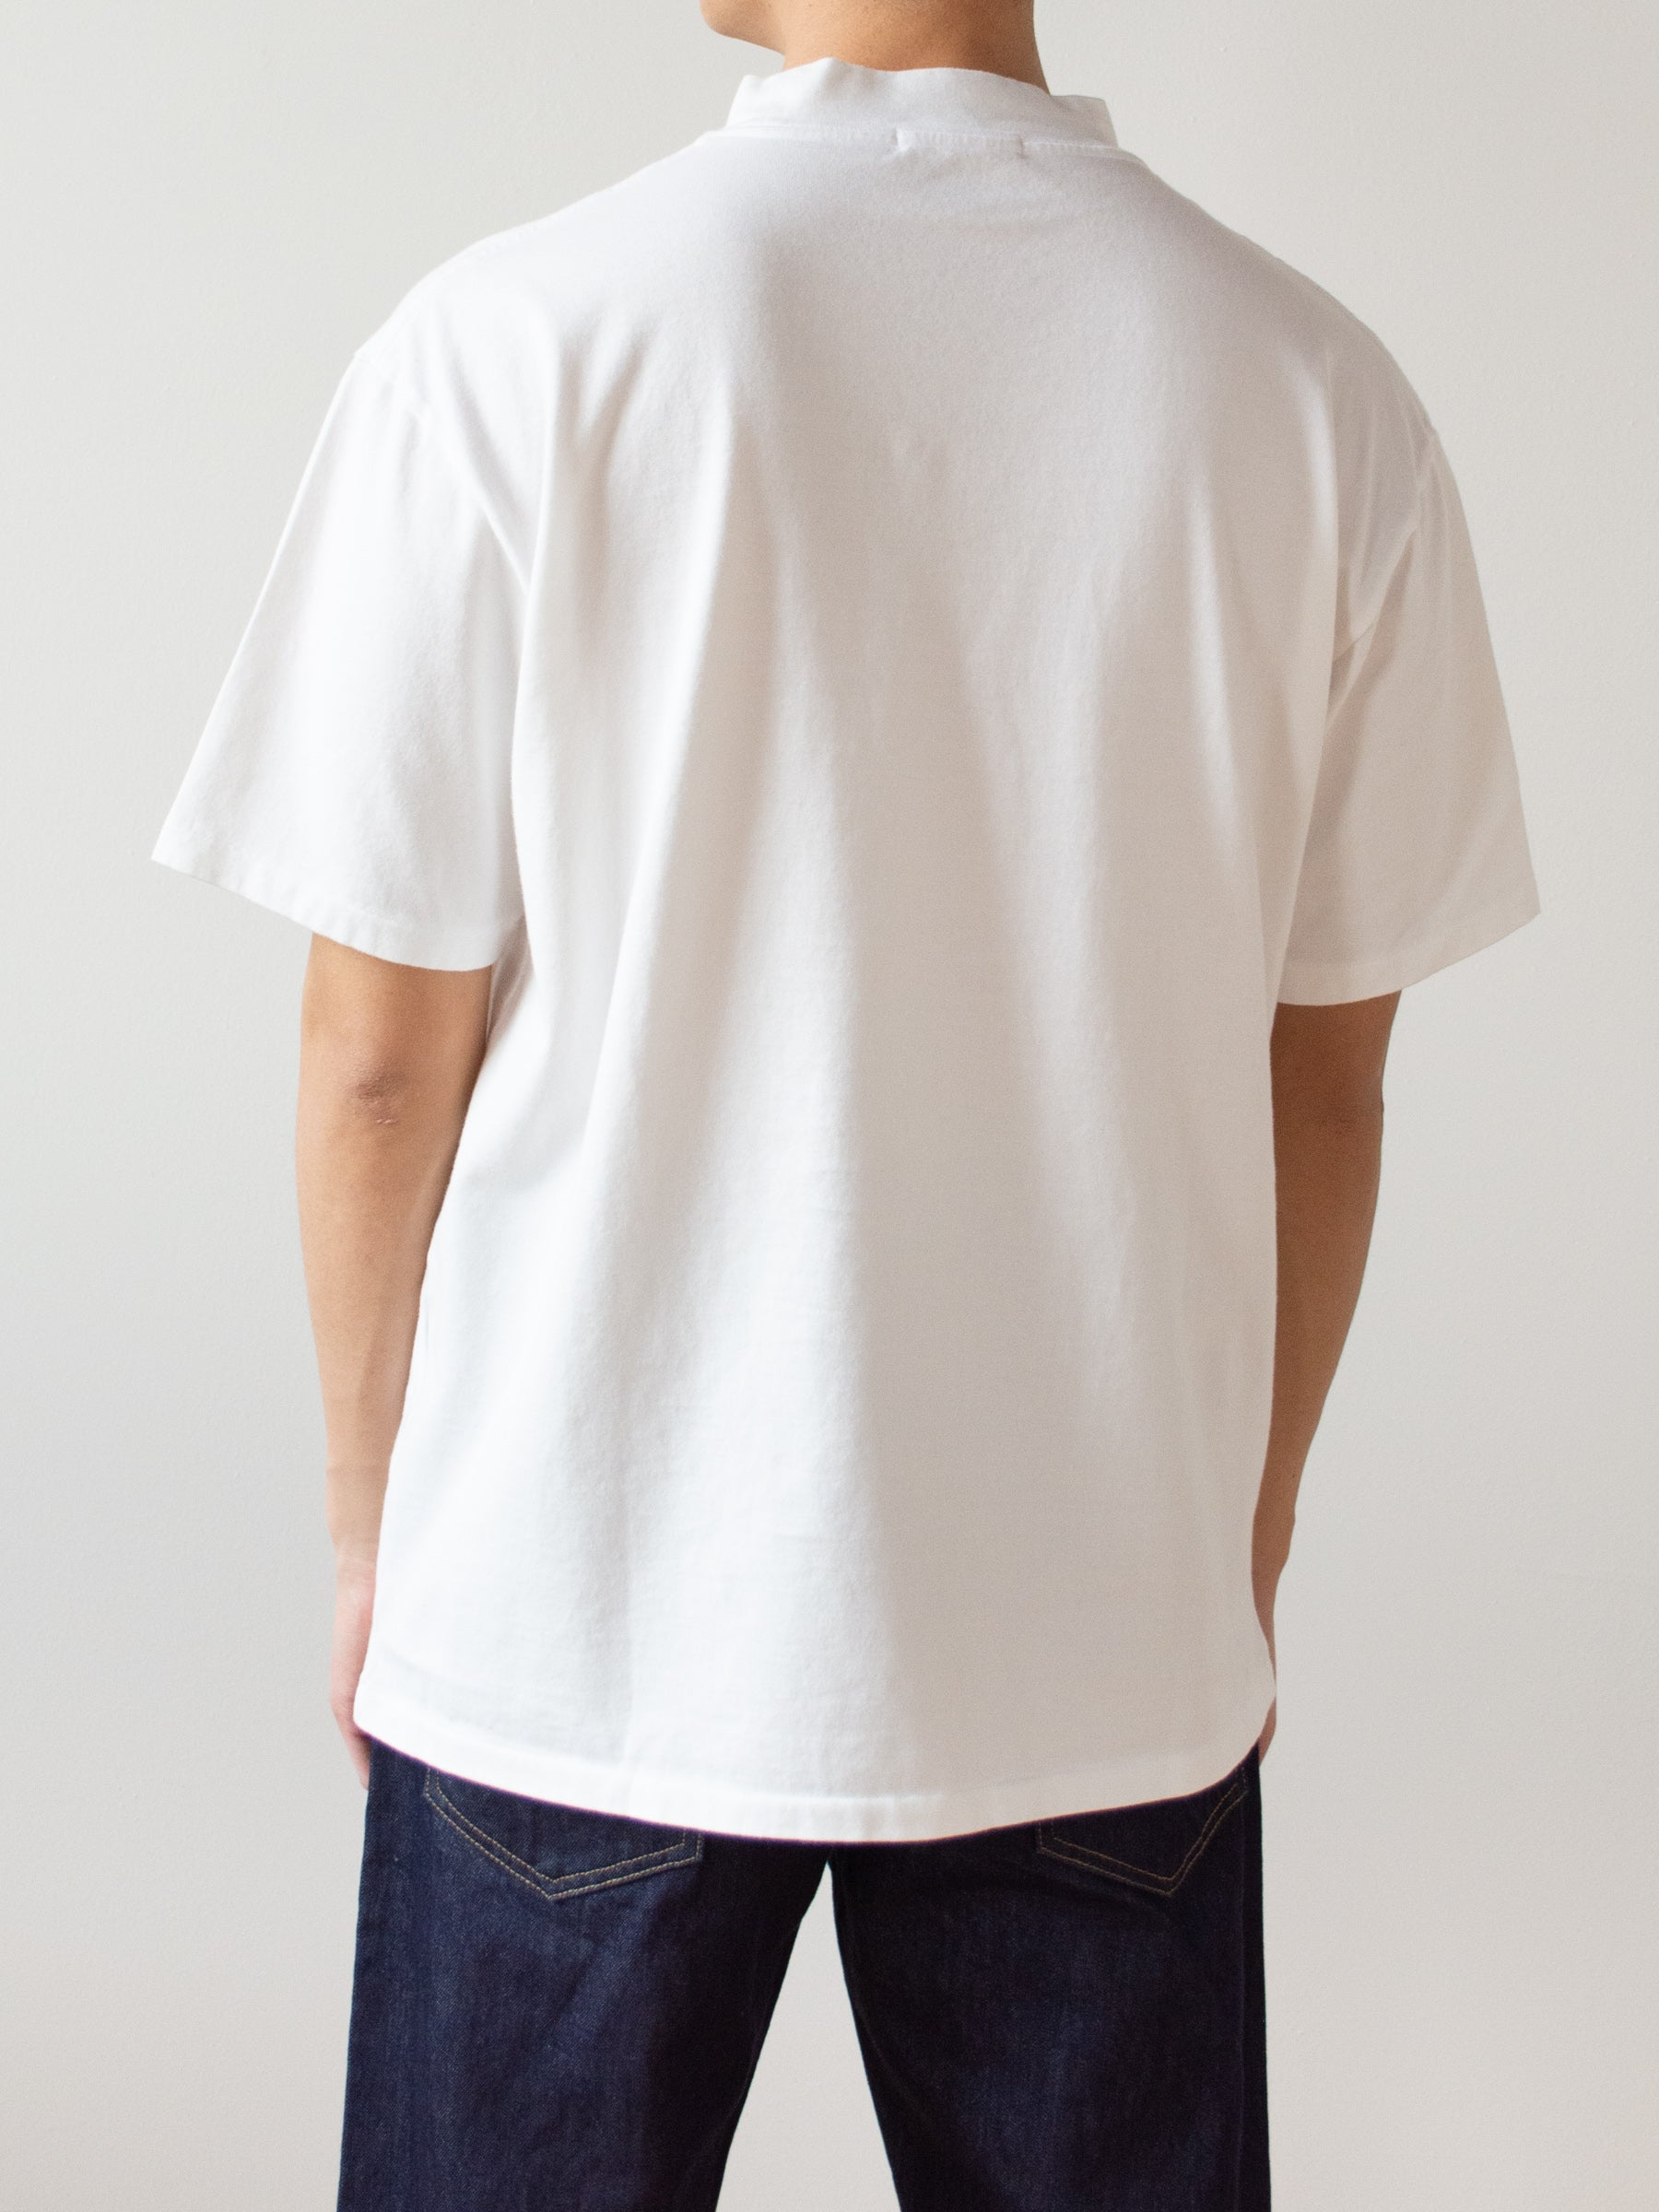 Mock Neck Tee - White